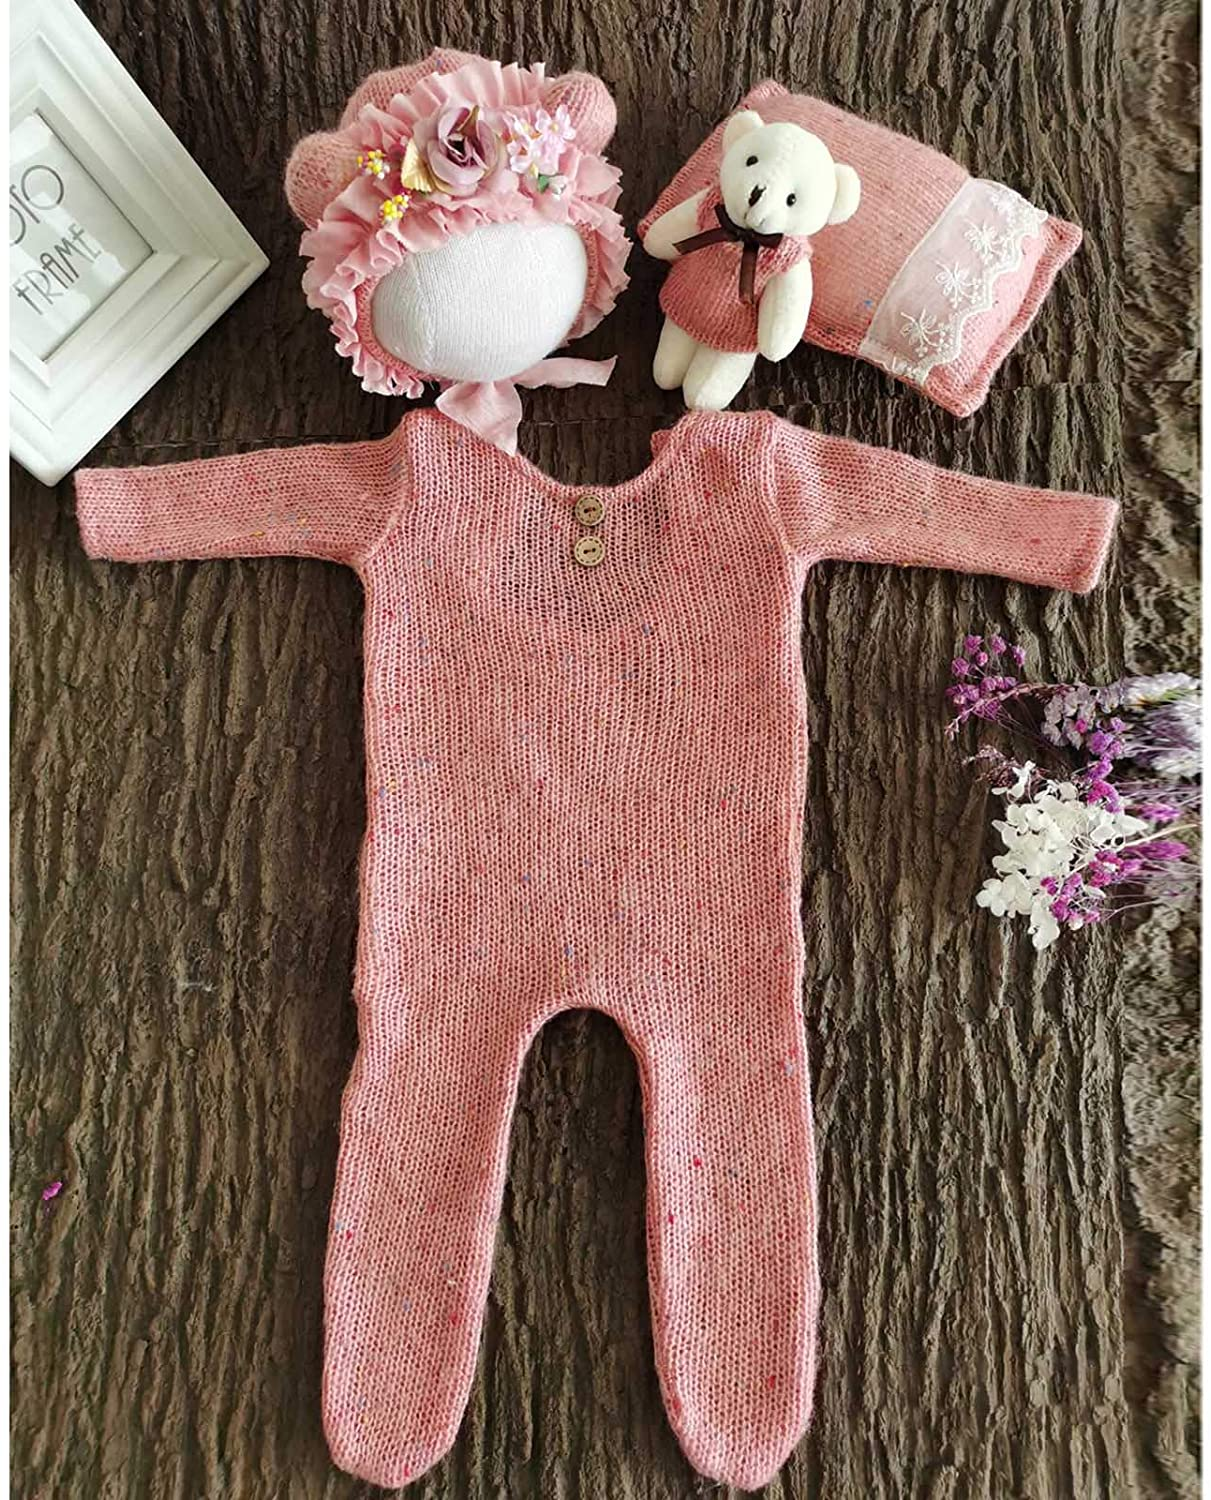 Angwang 4 Pcs//Set Baby Infants Hat Pillow Romper Jumpsuit Bear Doll Newborn Photography Props Photo Shooting Clothing Outfits 2#